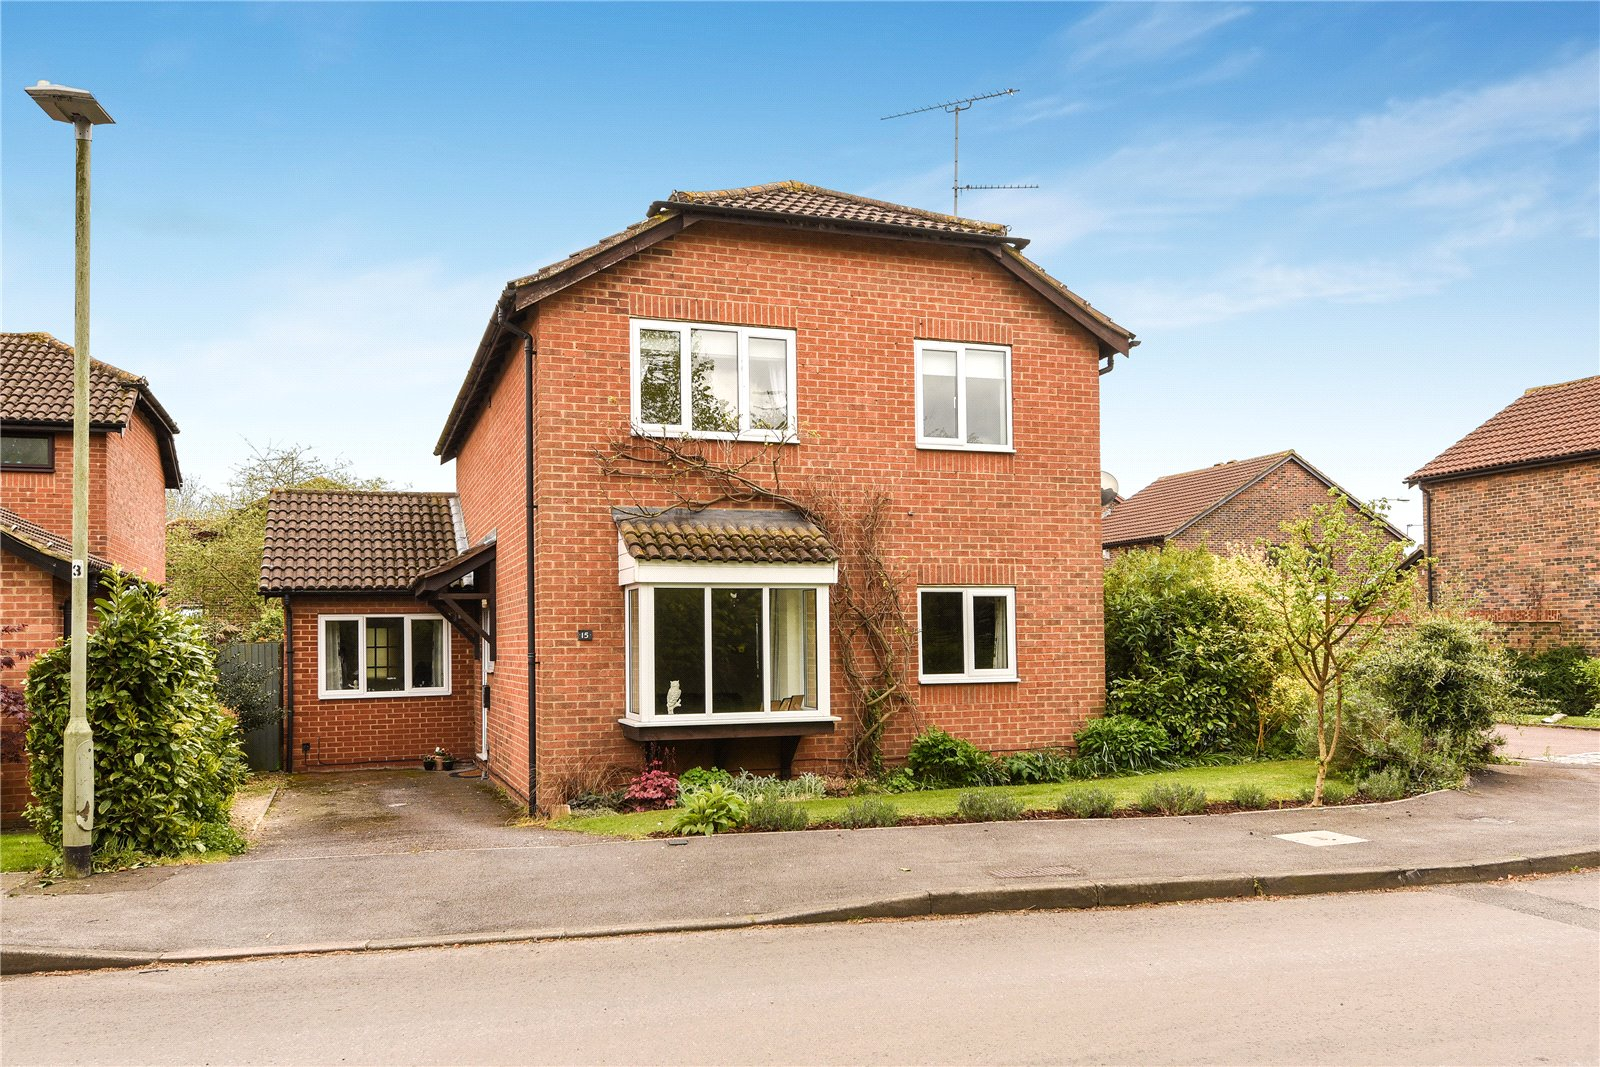 4 Bedrooms Detached House for sale in Thistleton Way, Lower Earley, Reading, Berkshire, RG6